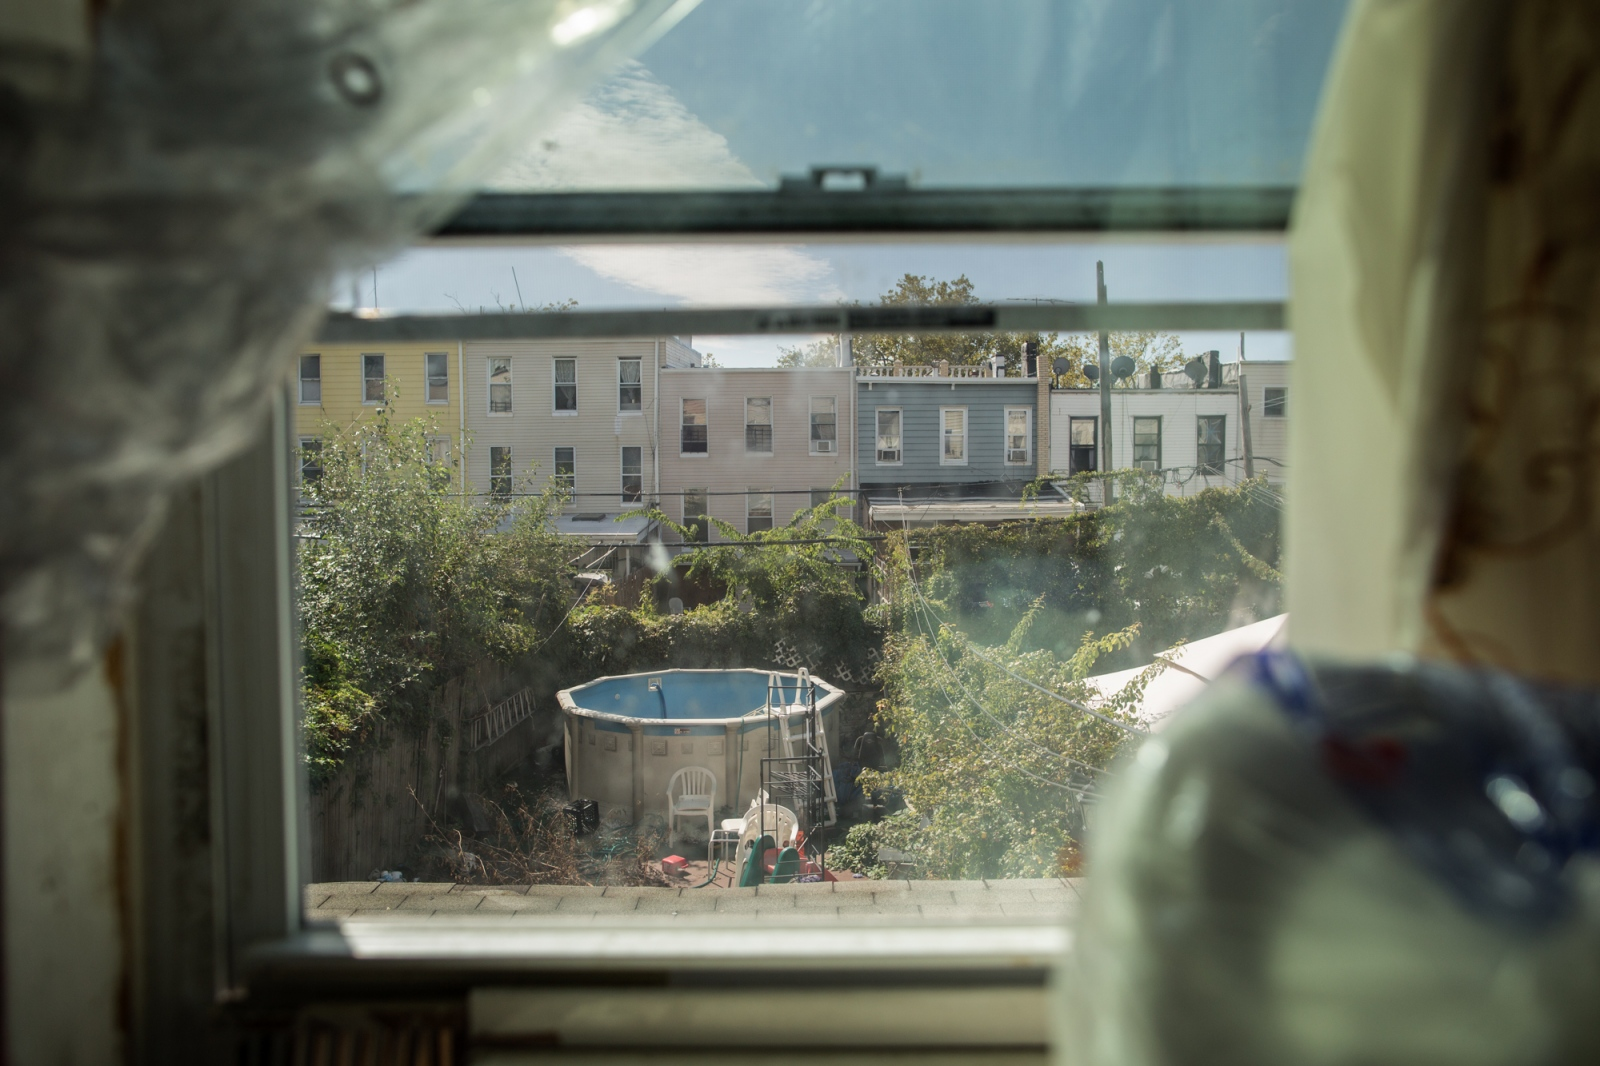 """Dionisia has lived in New York for almost 20 years, """"I have lived in different apartments but always in the neighborhood of Sunset Park, which is where most of my country people of Puebla live,"""" says Dionisia while she is looking from her kitchen window of her apartment. Sunset Park, Brooklyn, New York, 2016."""